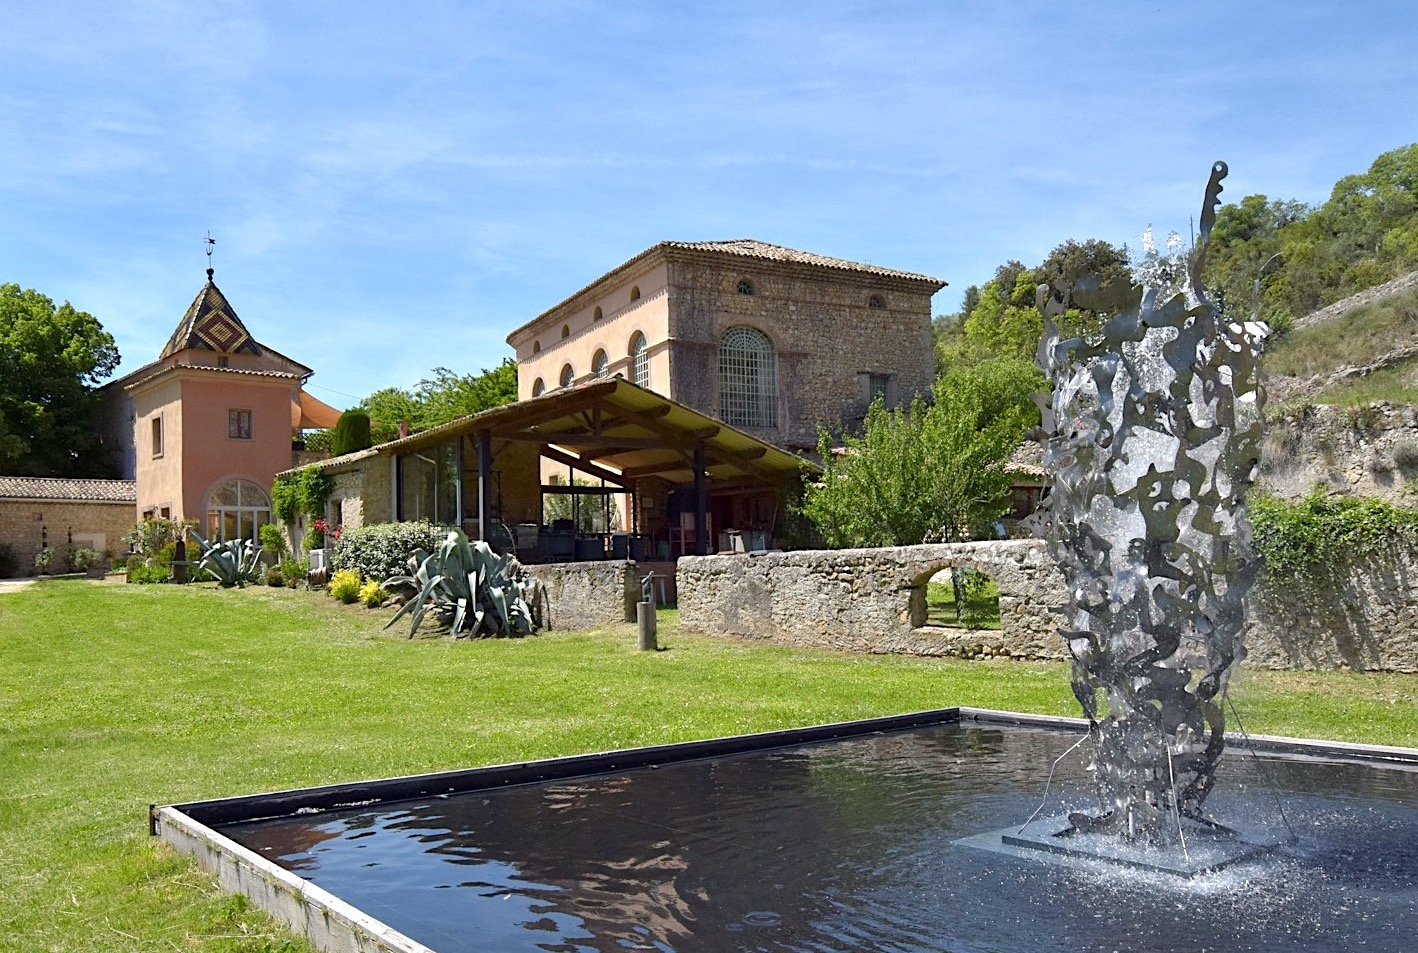 2150 : North of Uzès, former silk spinning centre, fully renovated, with artists' studios and art gallery, swimming pool, park of over 4 acres